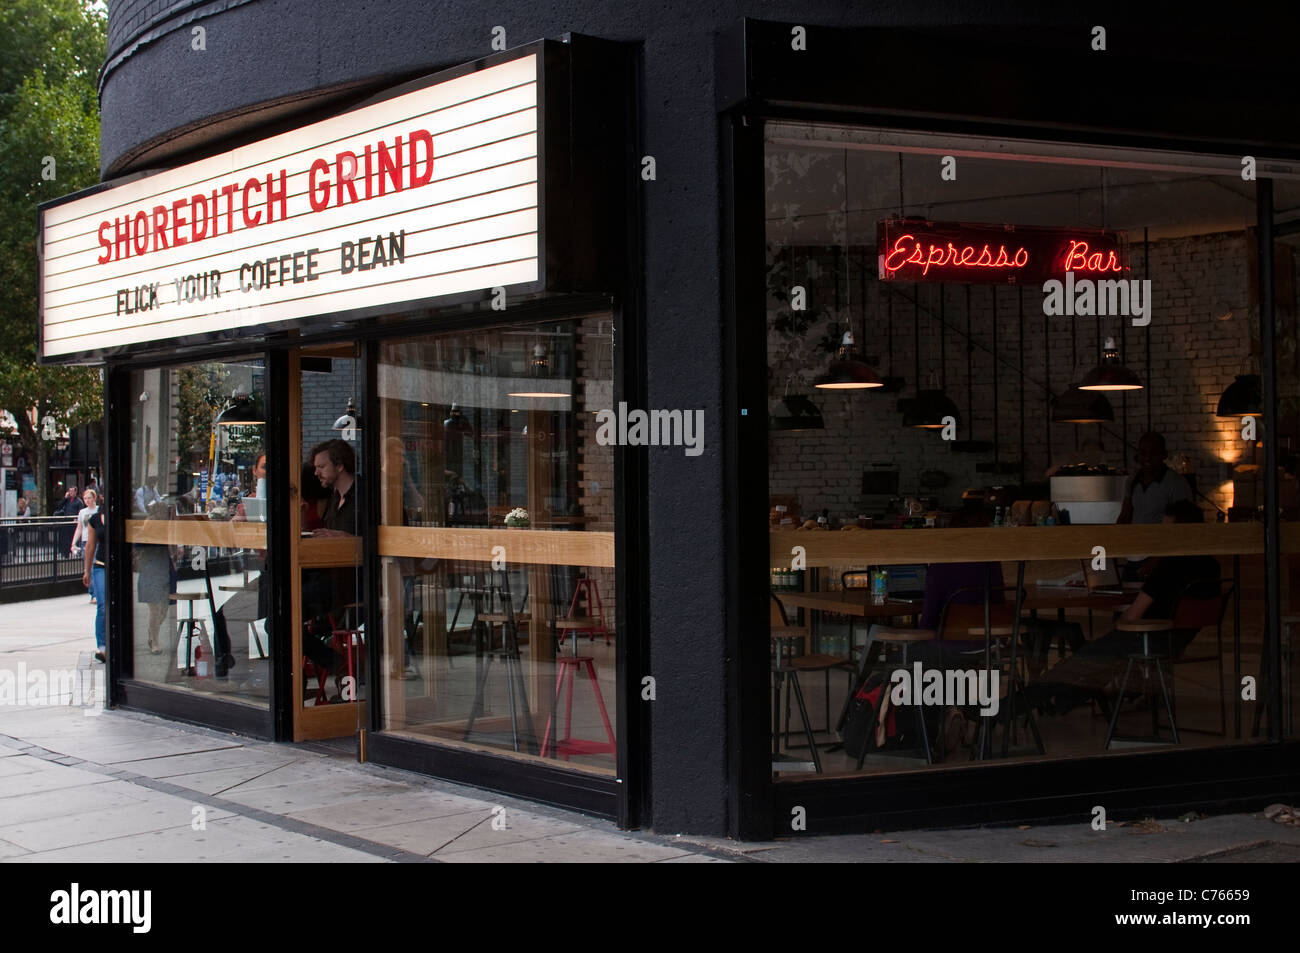 The exterior of the Shoreditch Grind espresso bar, a new cafe in East London on Old Street roundabout, London. - Stock Image